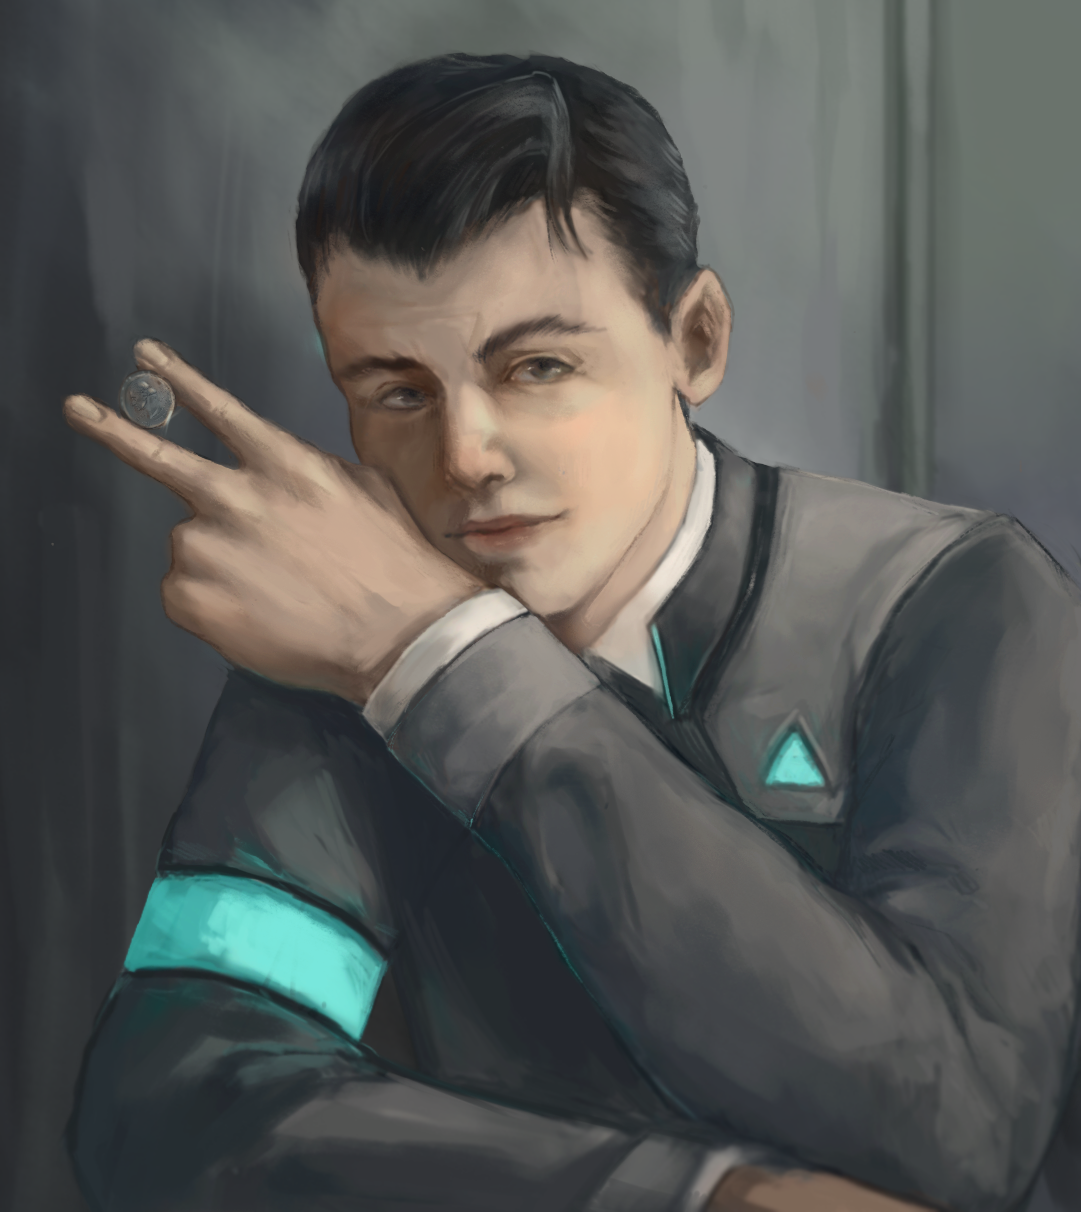 Connor RK800 by Stigerea